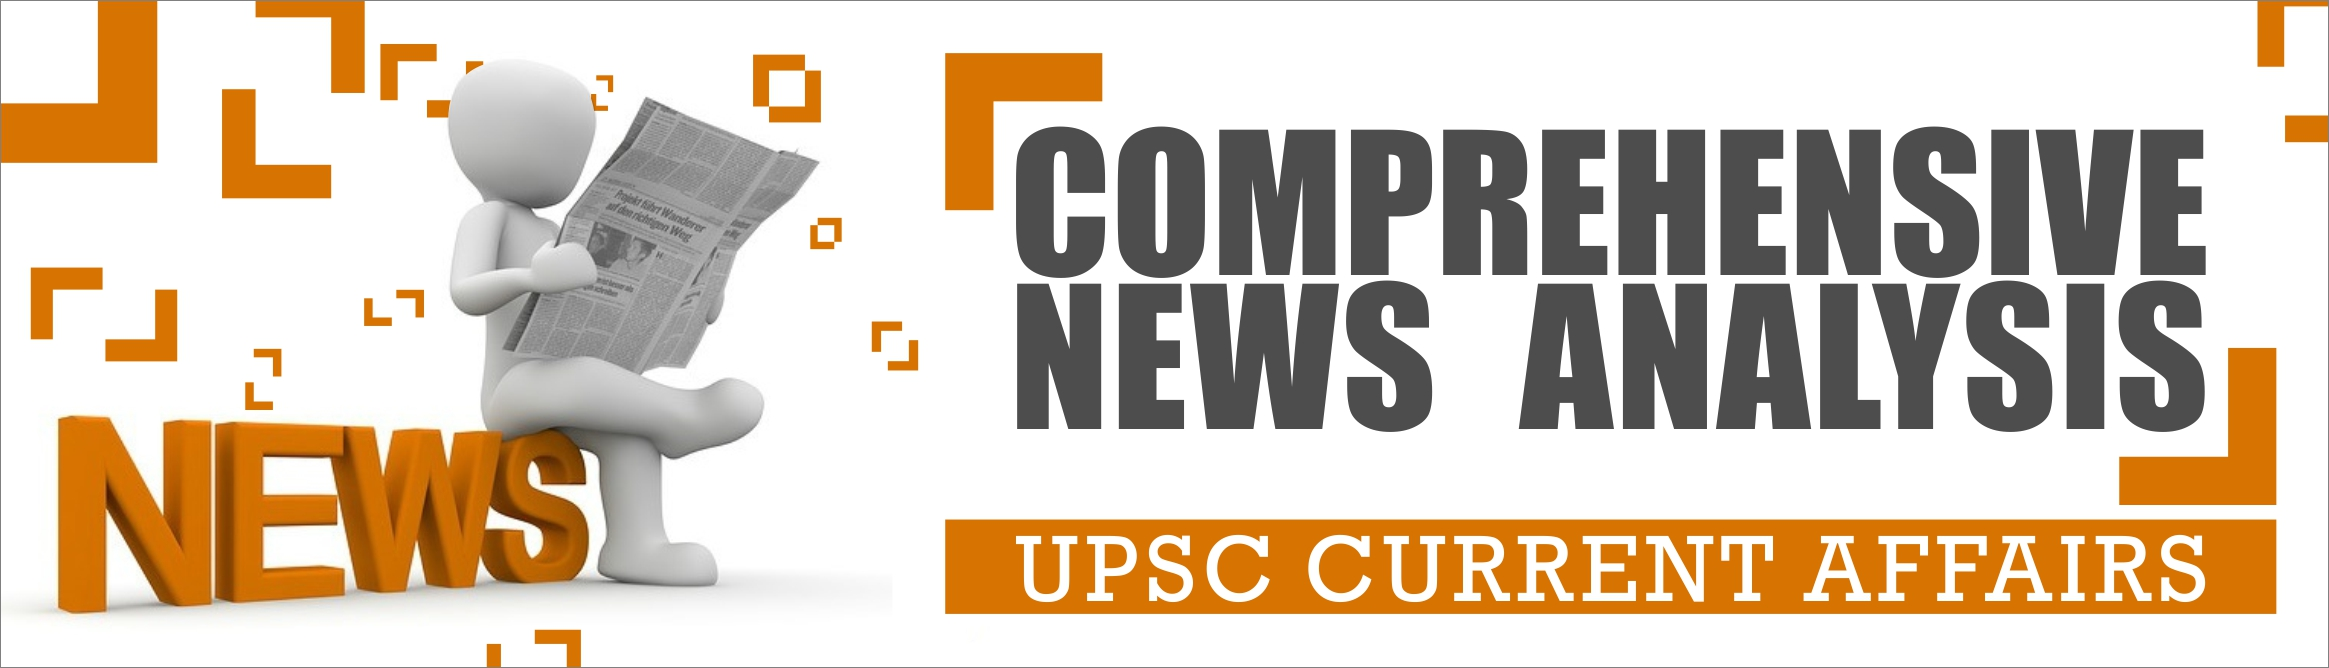 Daily News Analysis For UPSC Civil Services (IAS) Examination